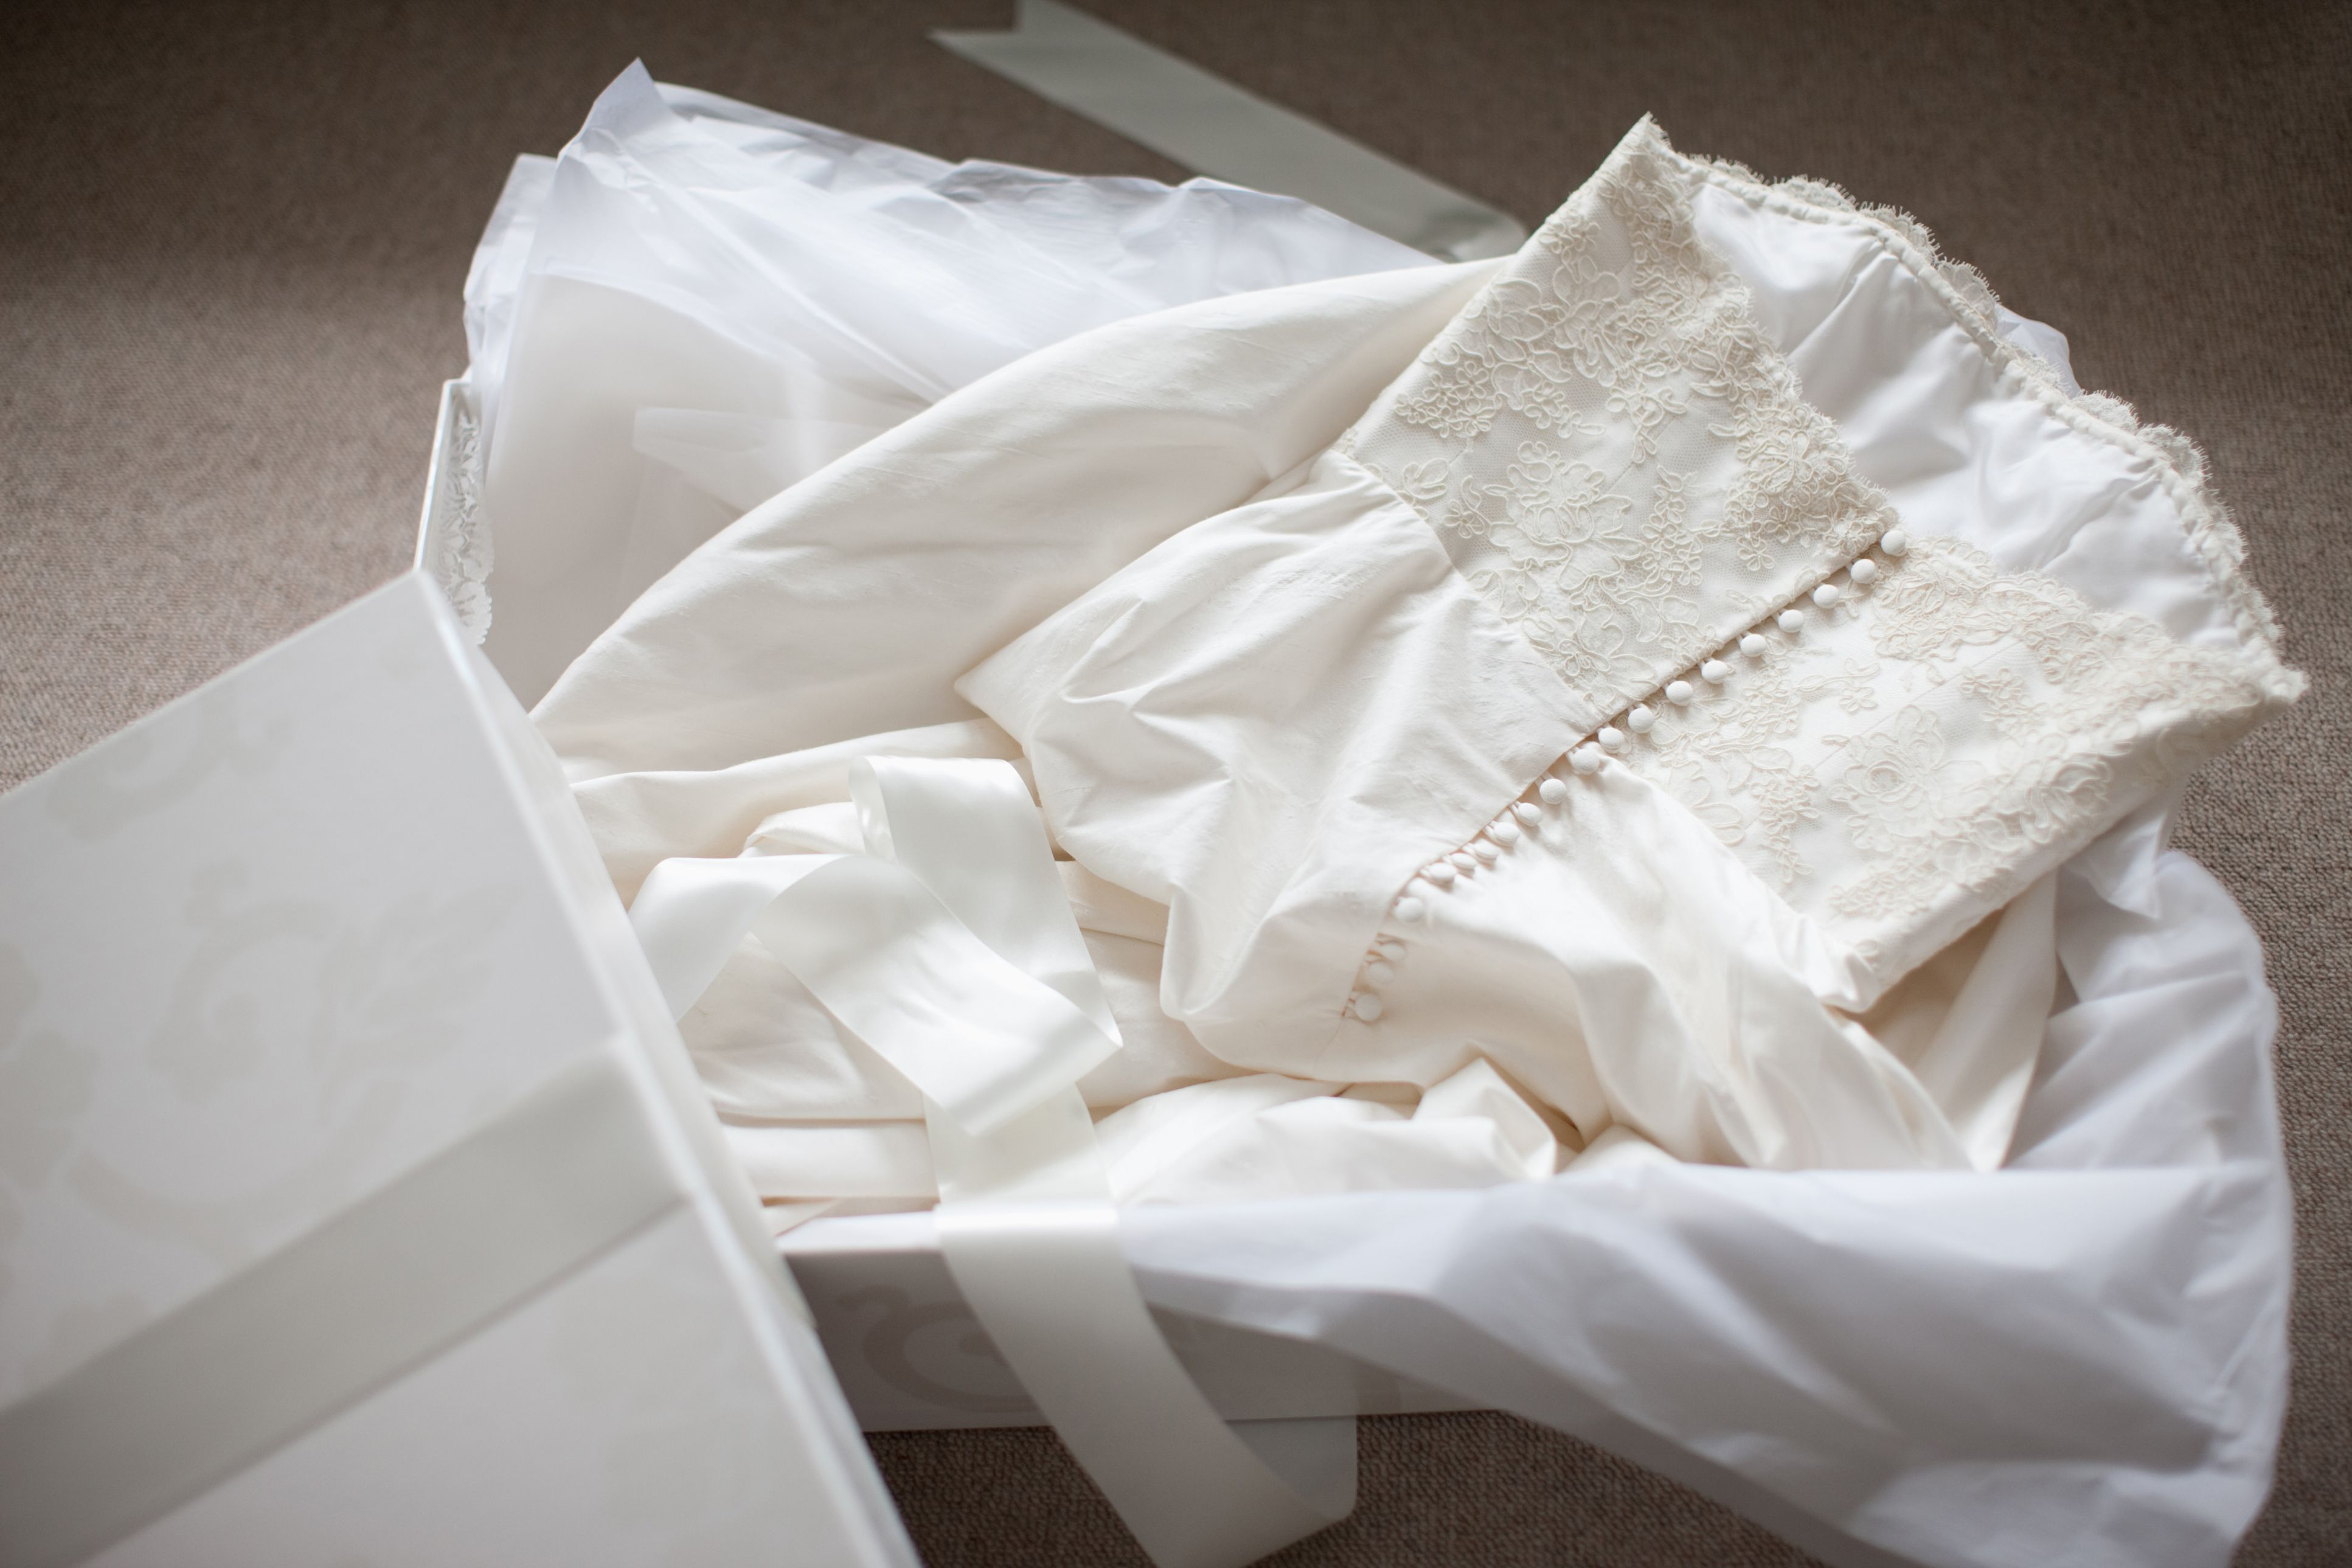 Wedding Gown Cleaning And Preserving 020 - Wedding Gown Cleaning And Preserving